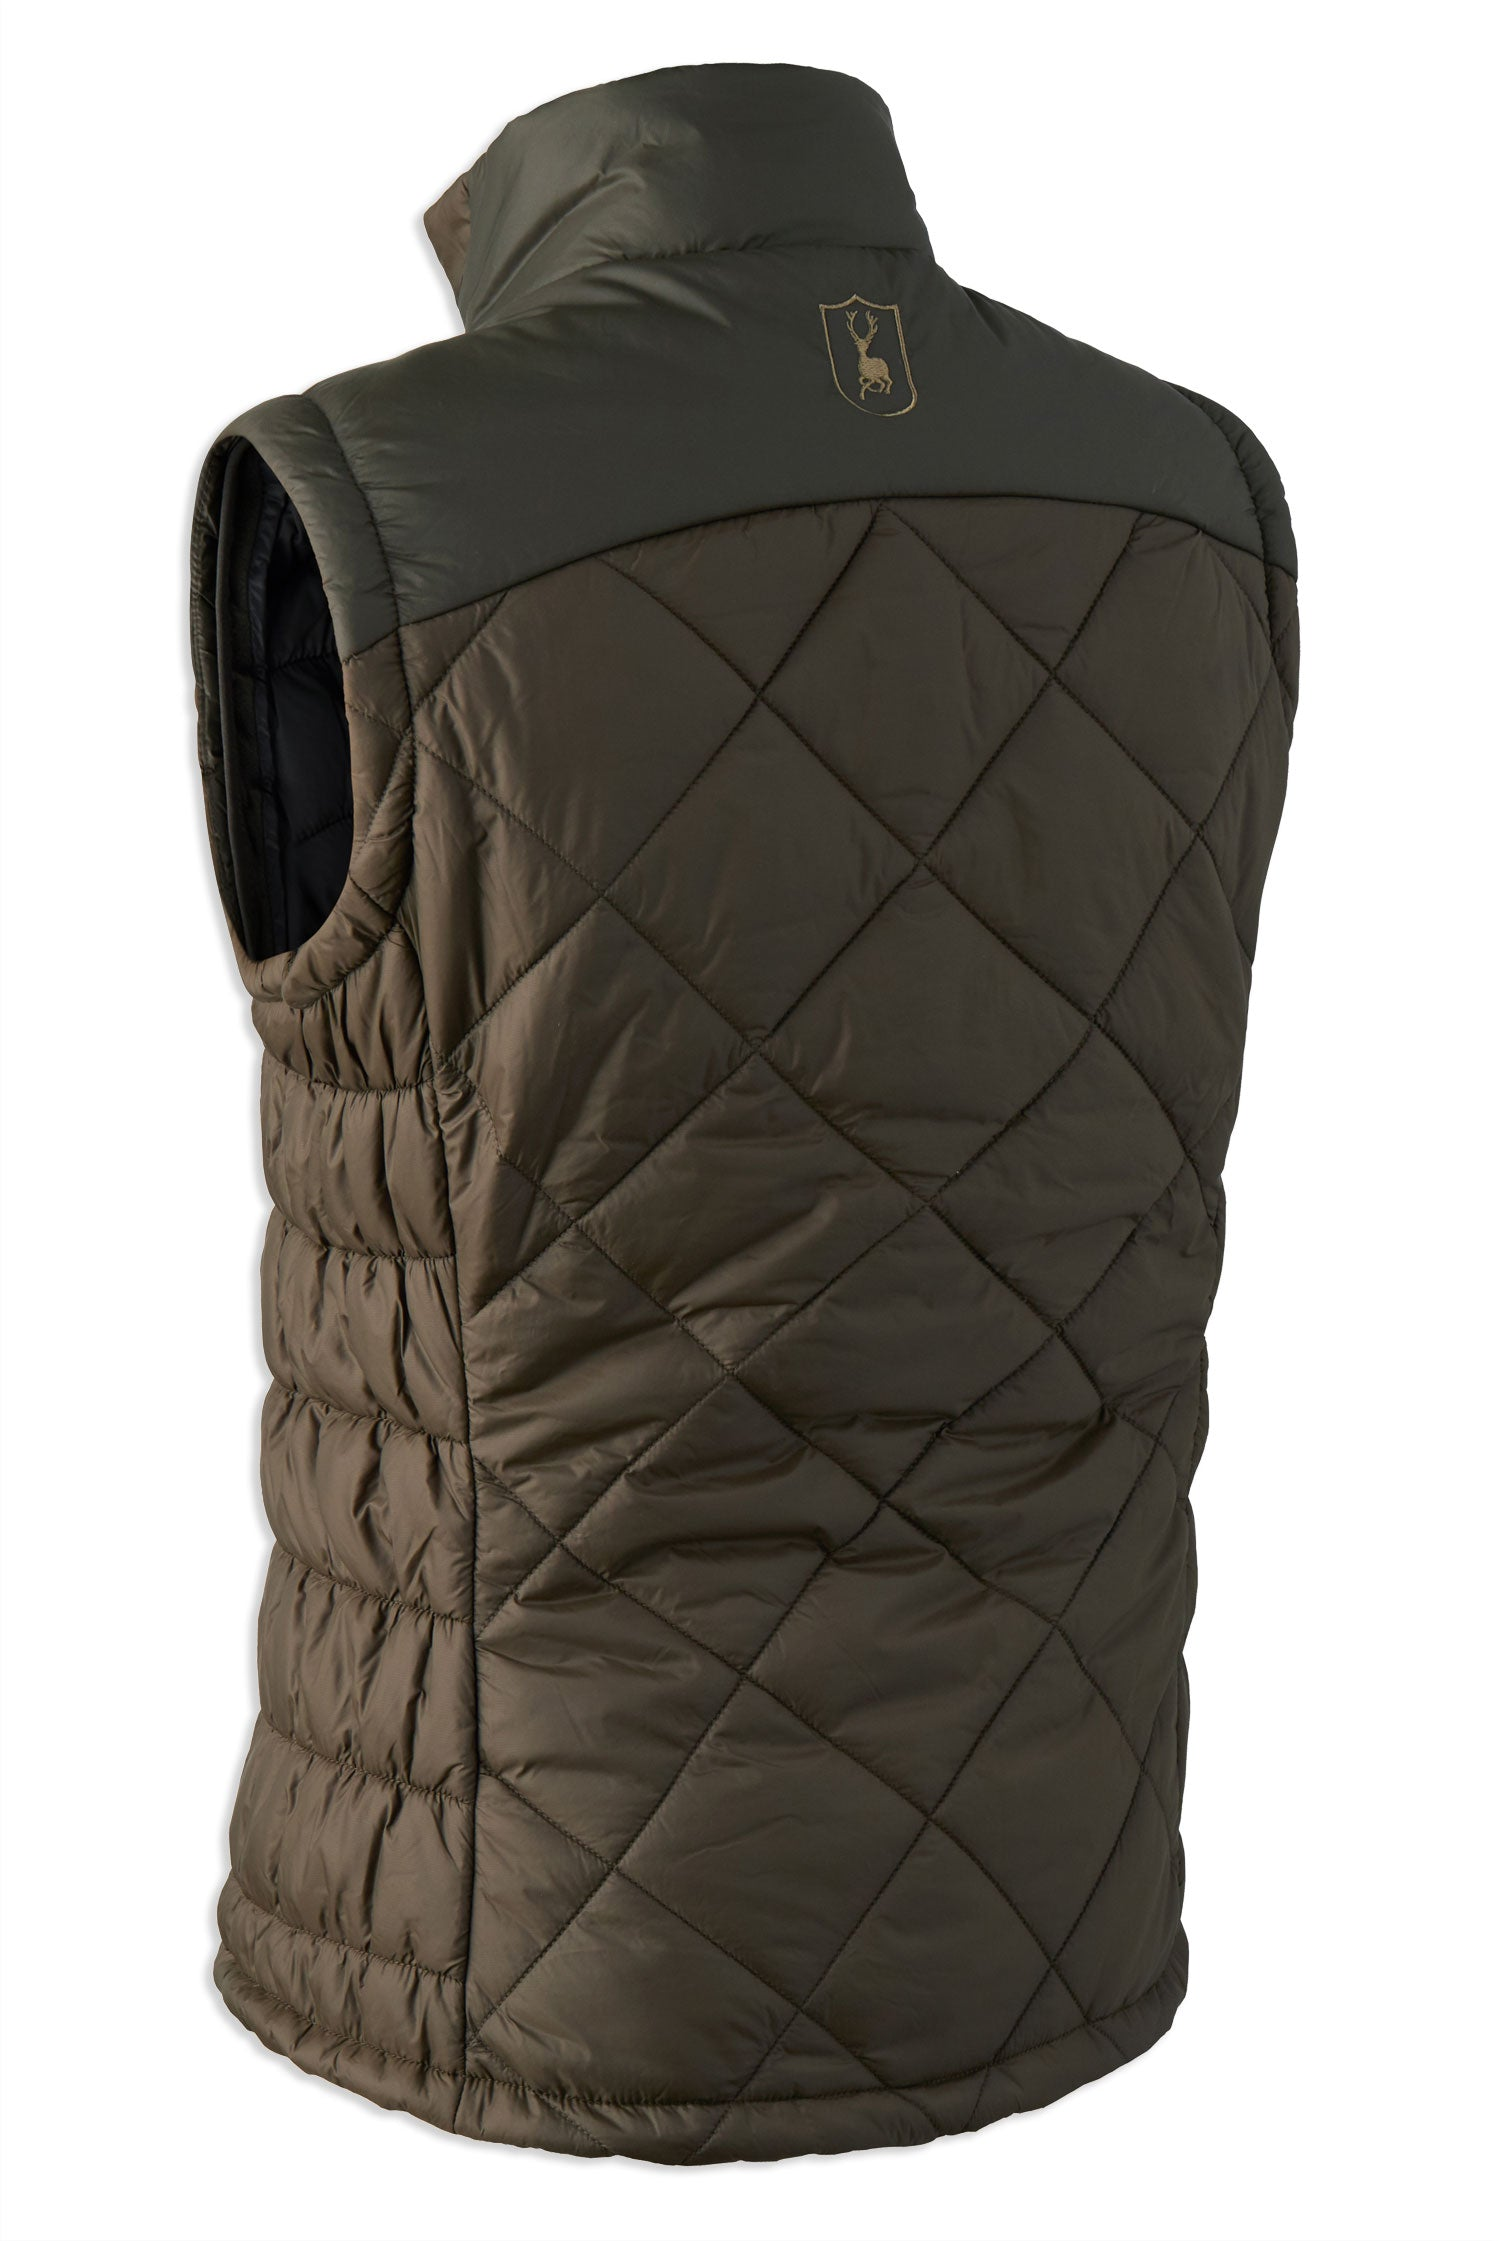 rear view Lady Christine Quilted Waistcoat by Deerhunter